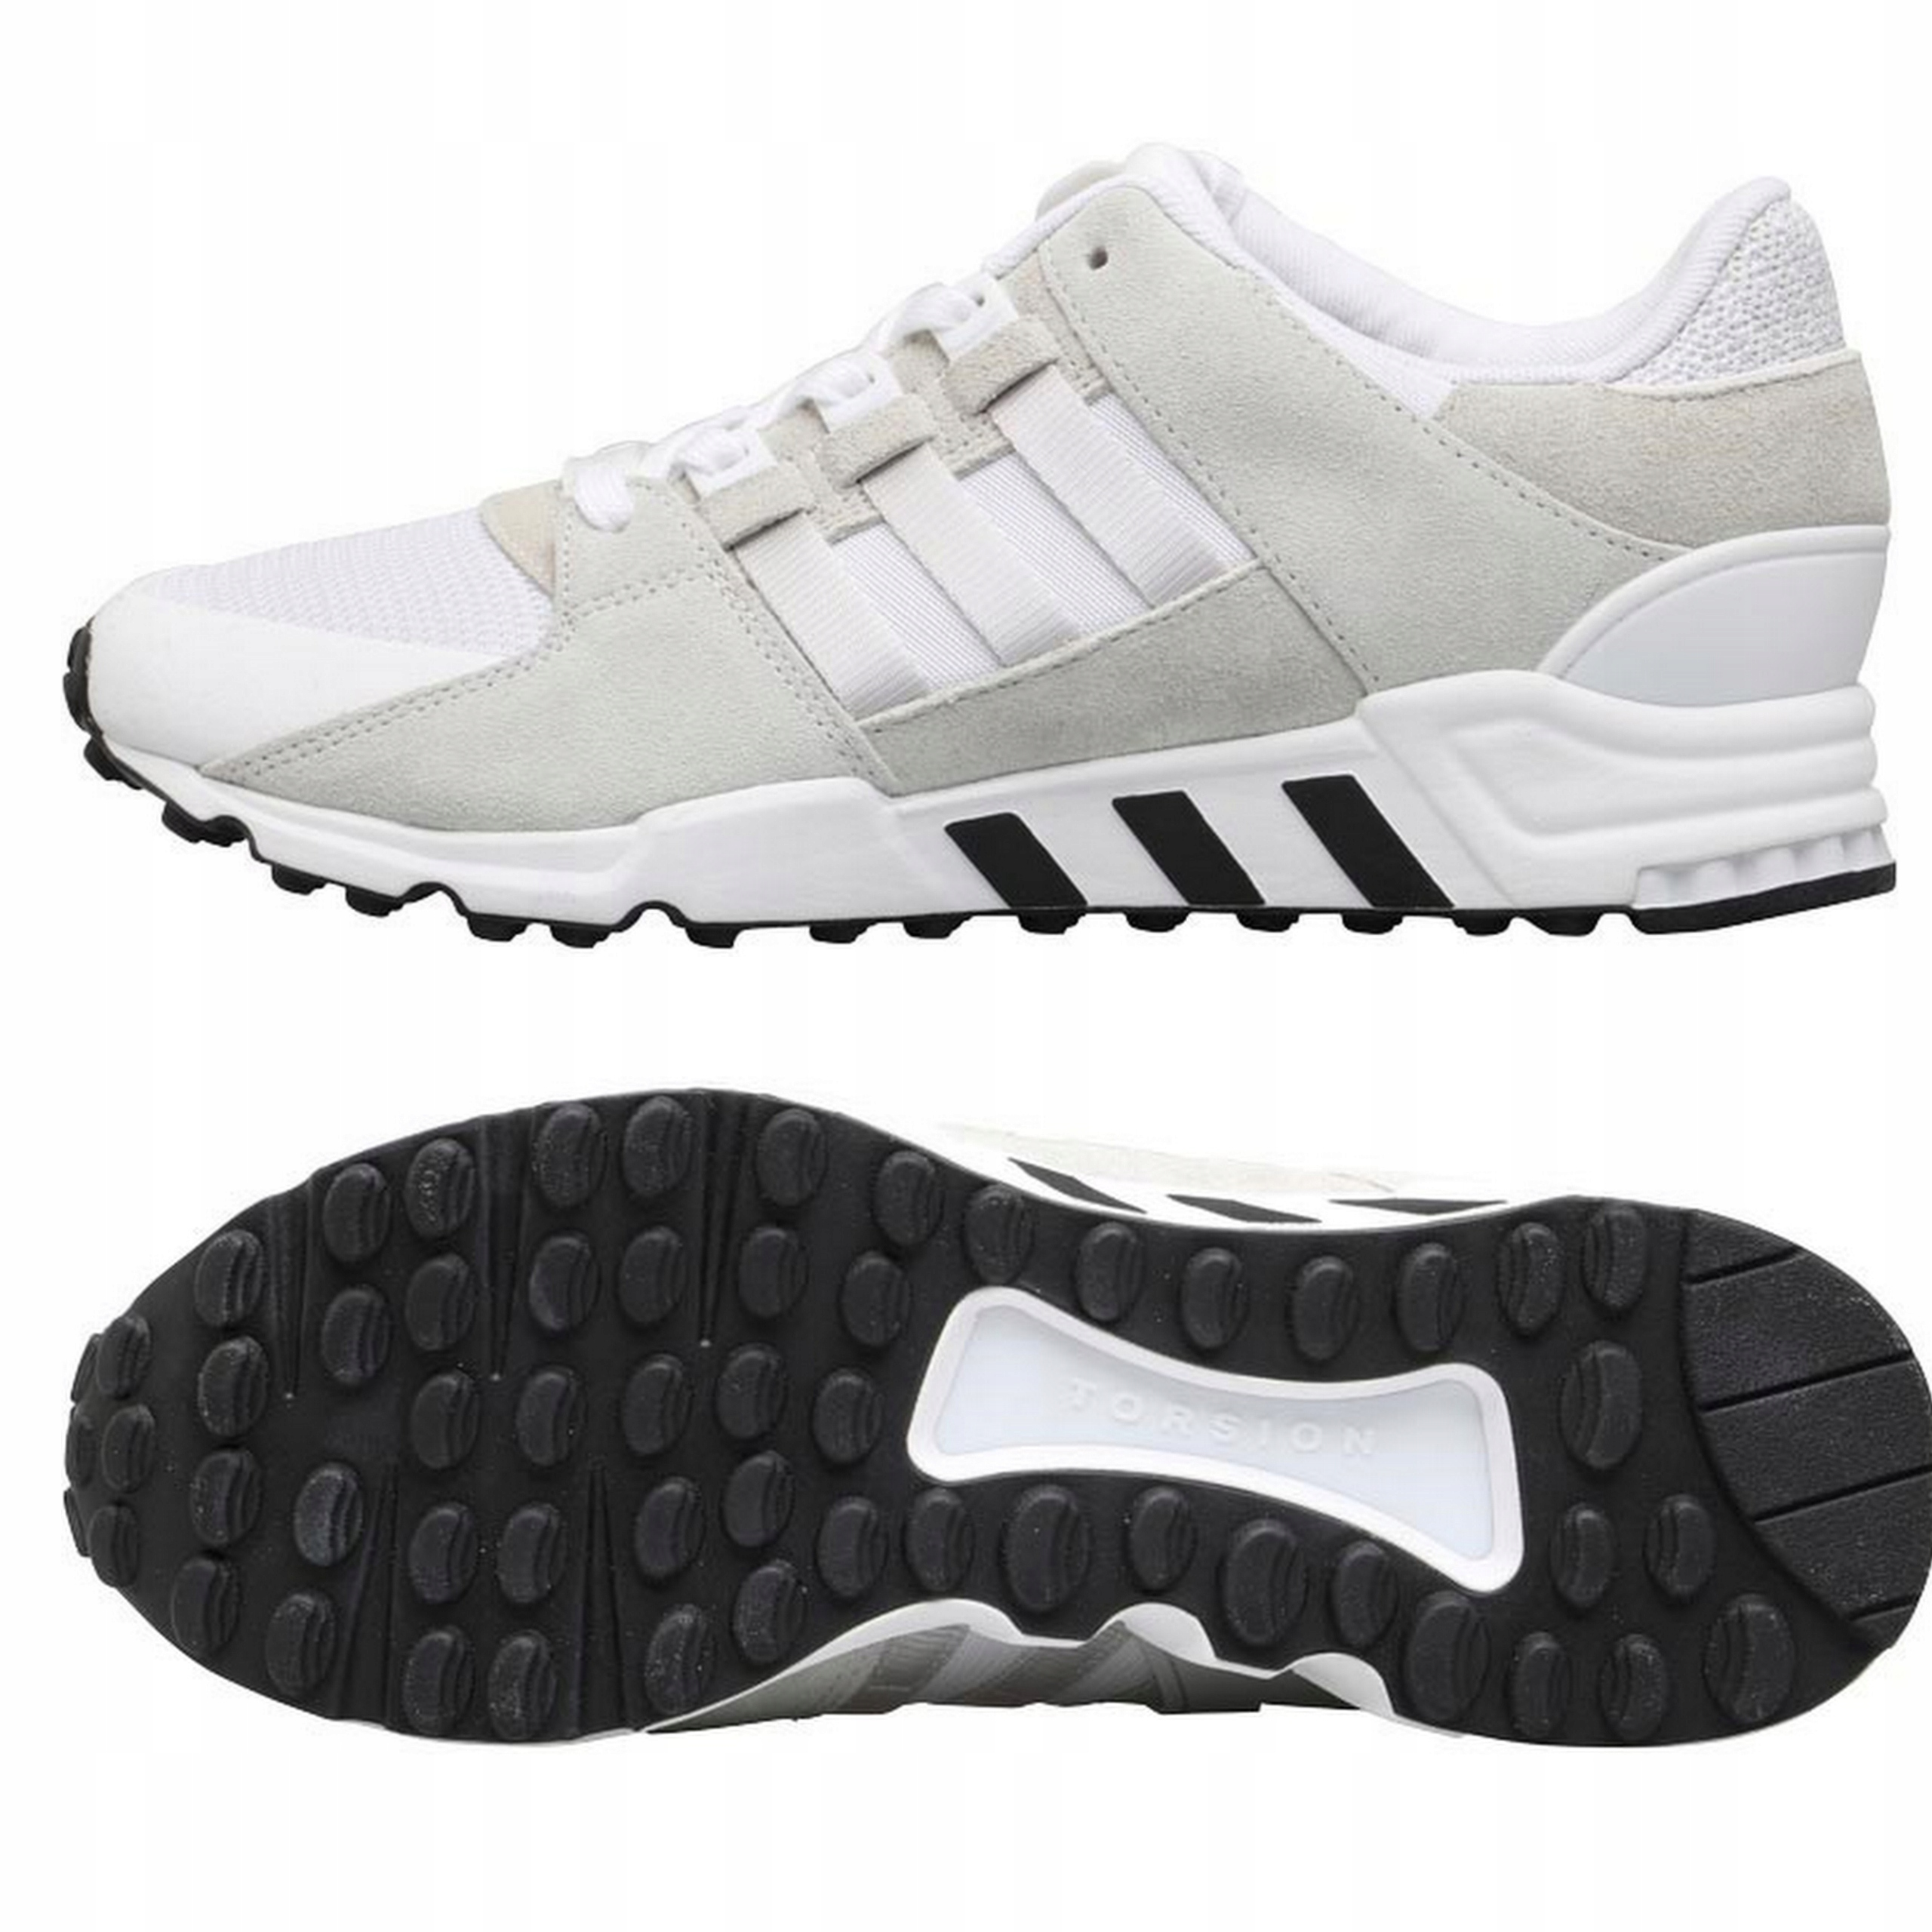 uk availability a277e 6946d Adidas EQT RF Jasne Buty Męskie Sport BY9625 36